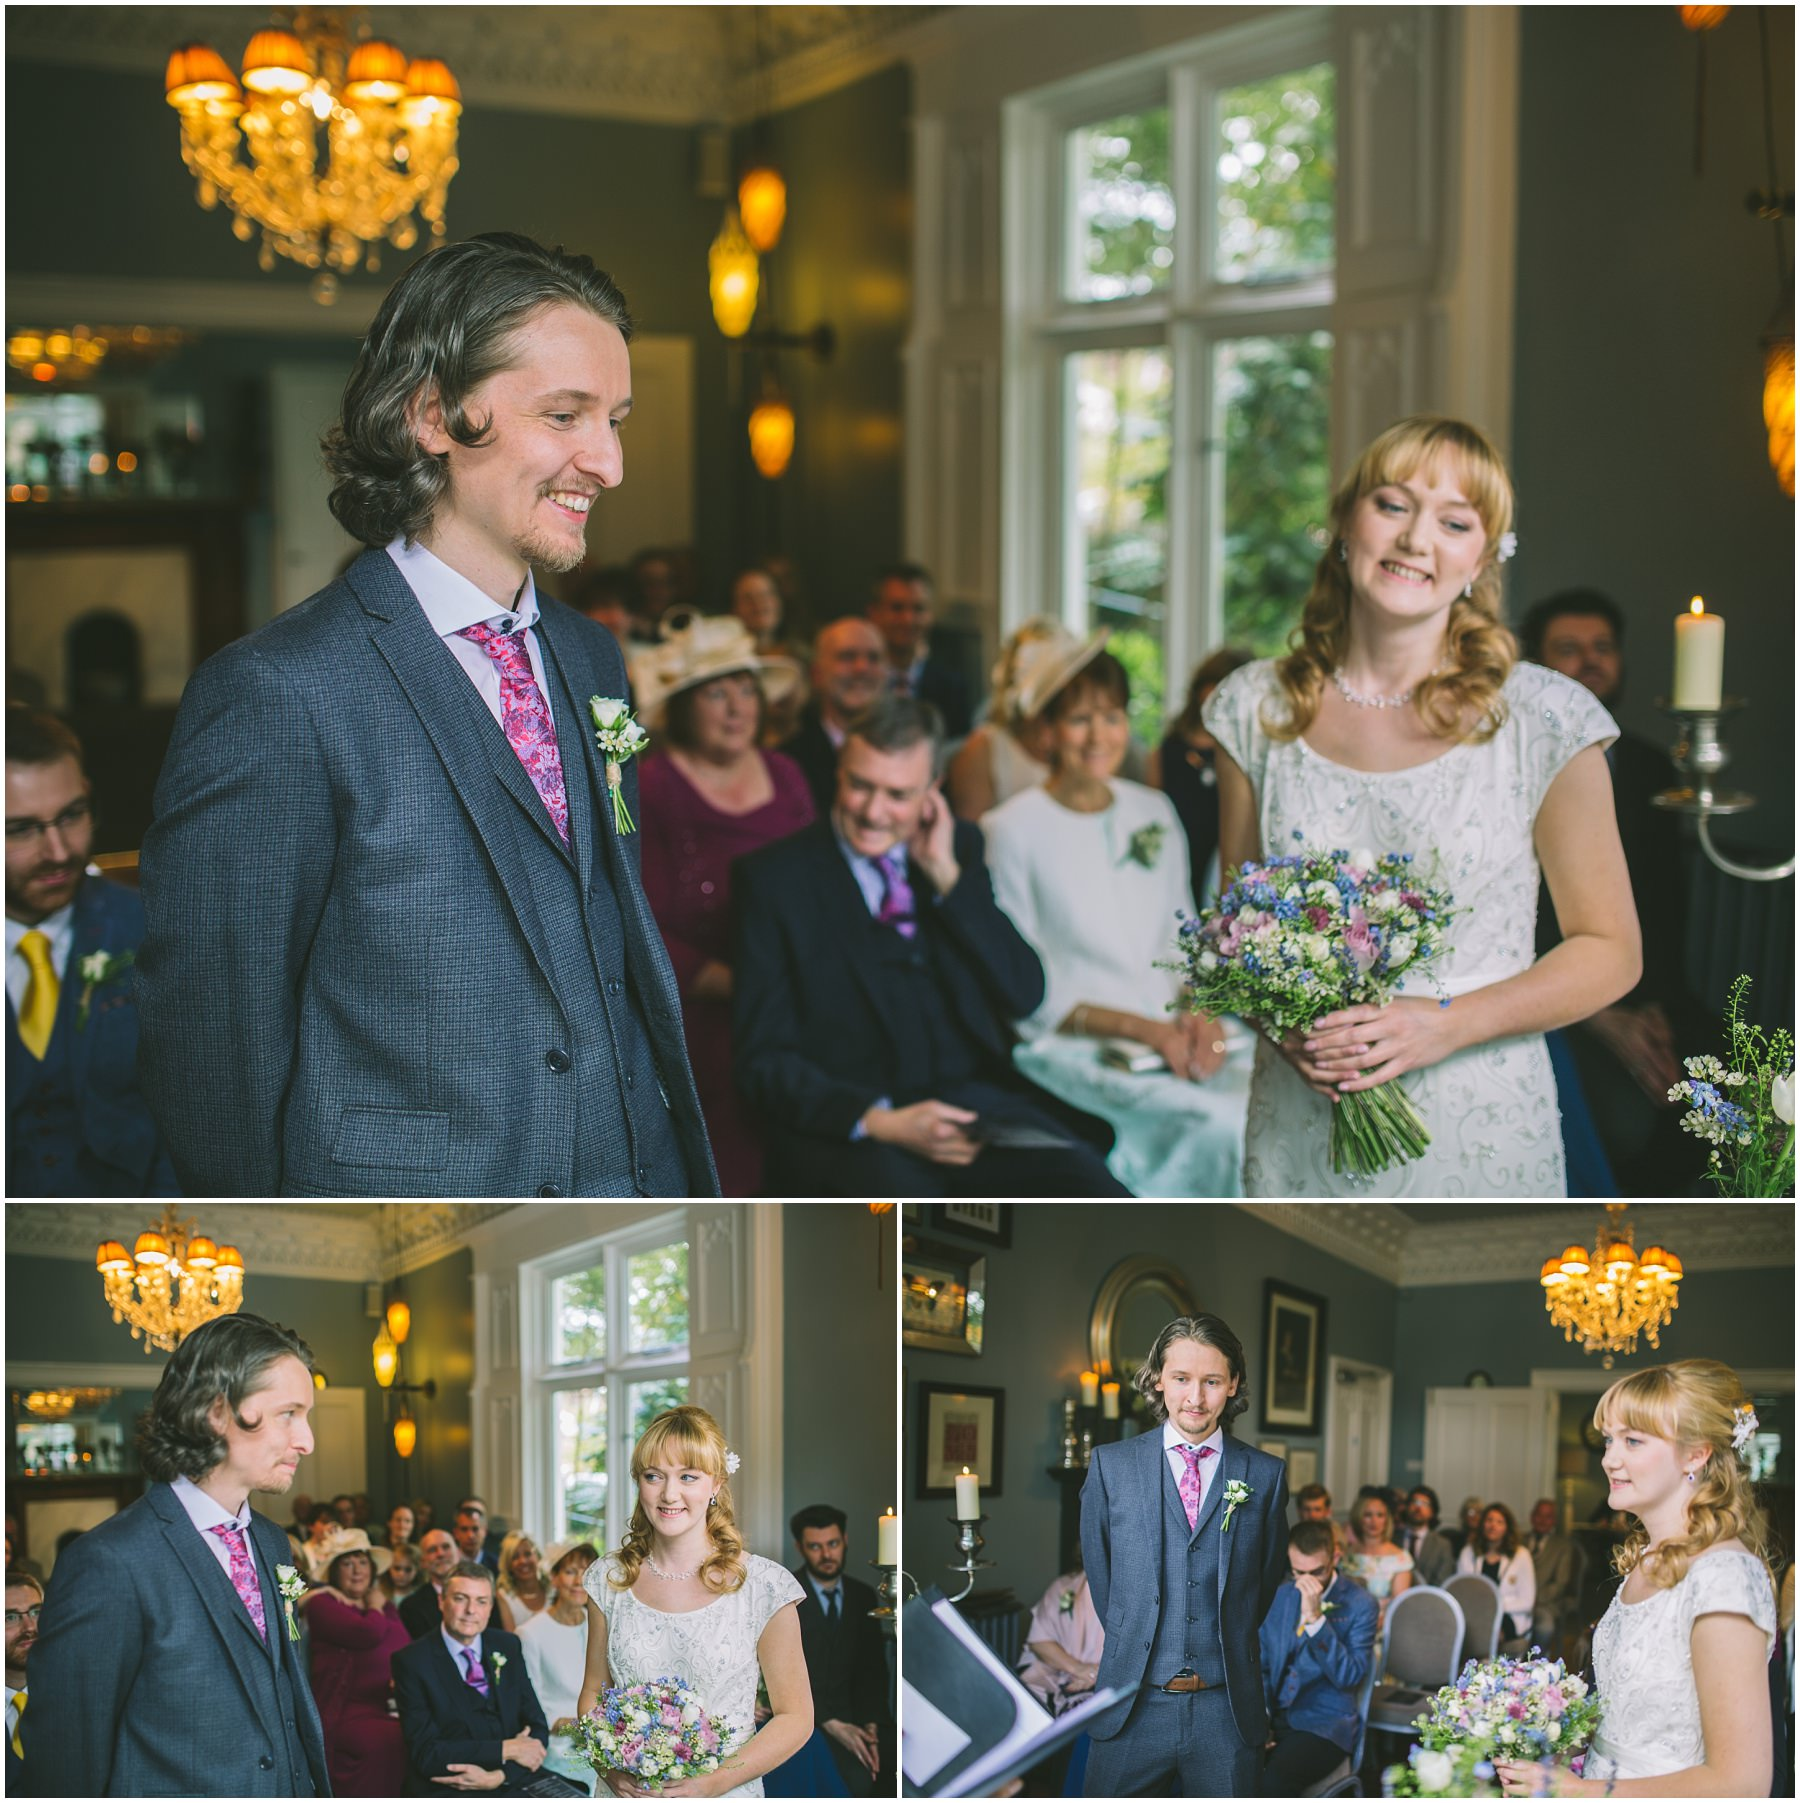 Wedding Ceremony in The Blue Room at Didsbury House